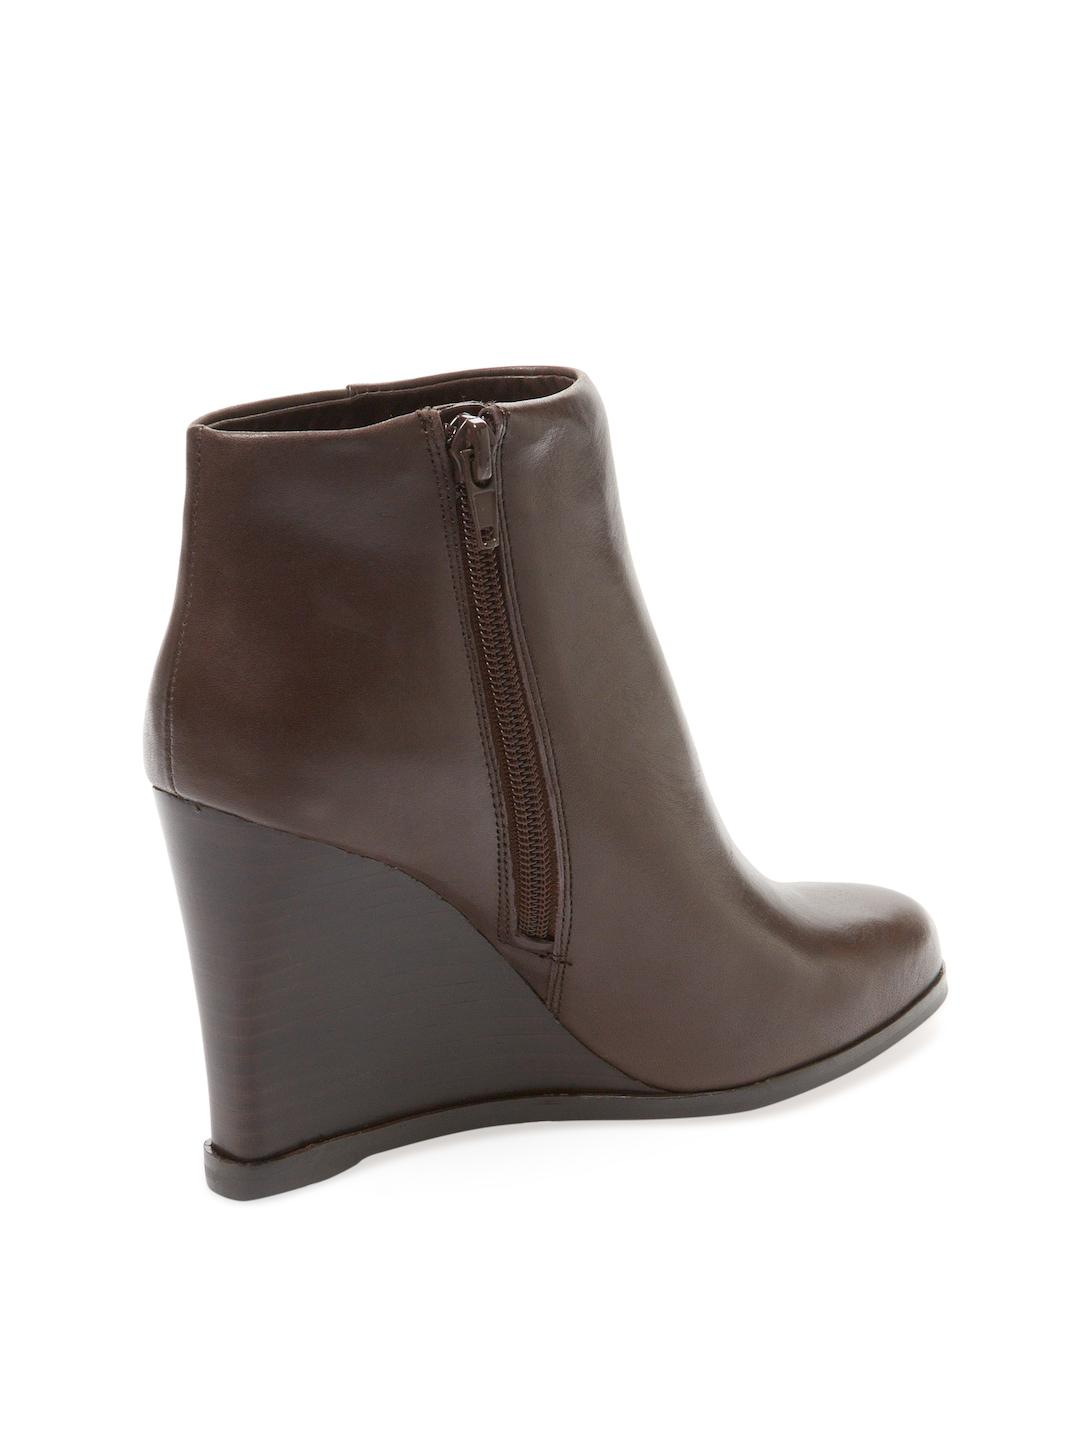 Vince Camuto Gemina Leather Wedge Bootie in Brown